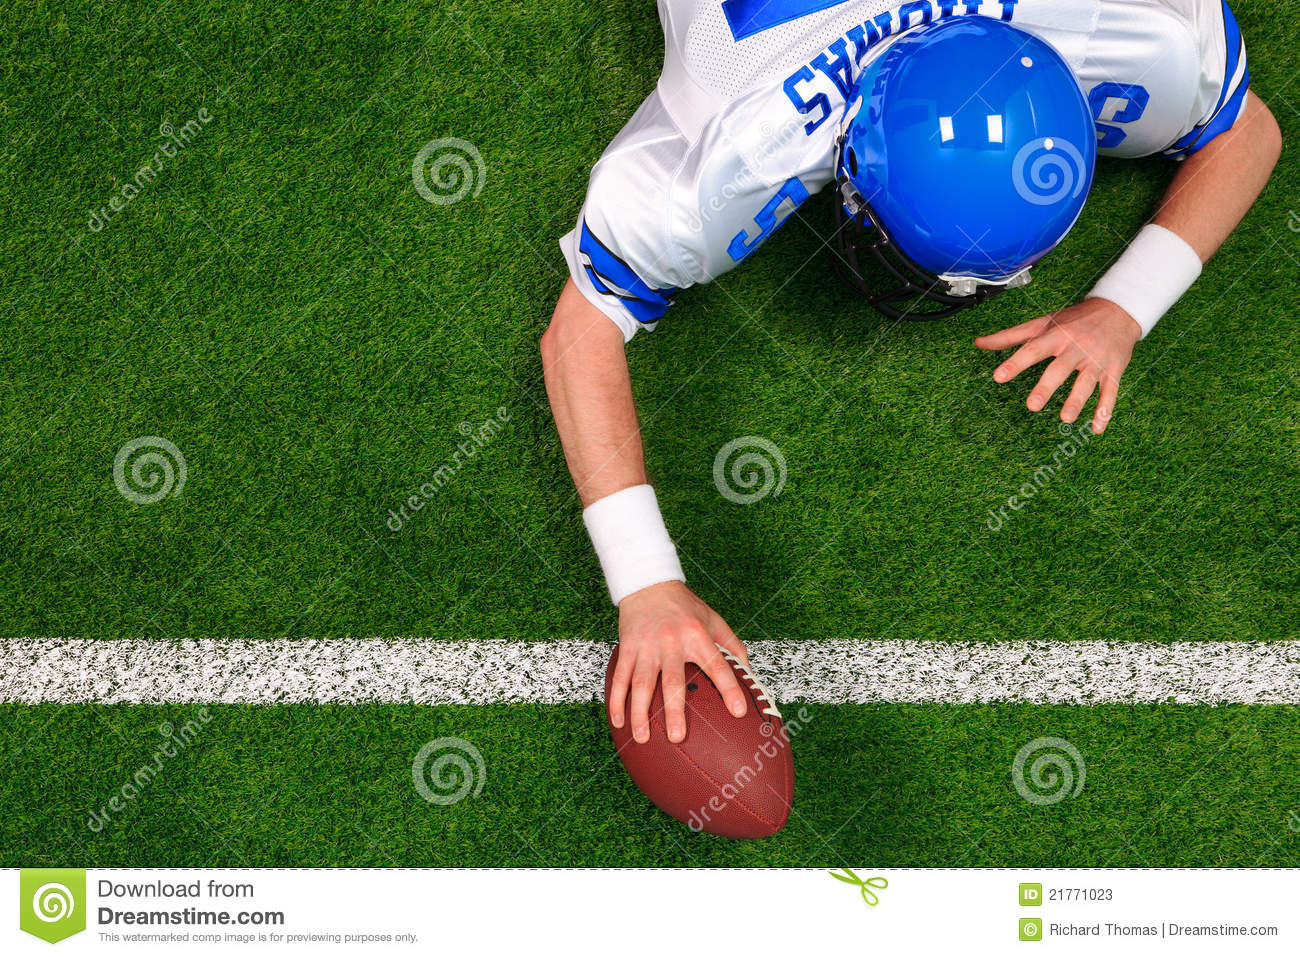 American football player one handed touchdown